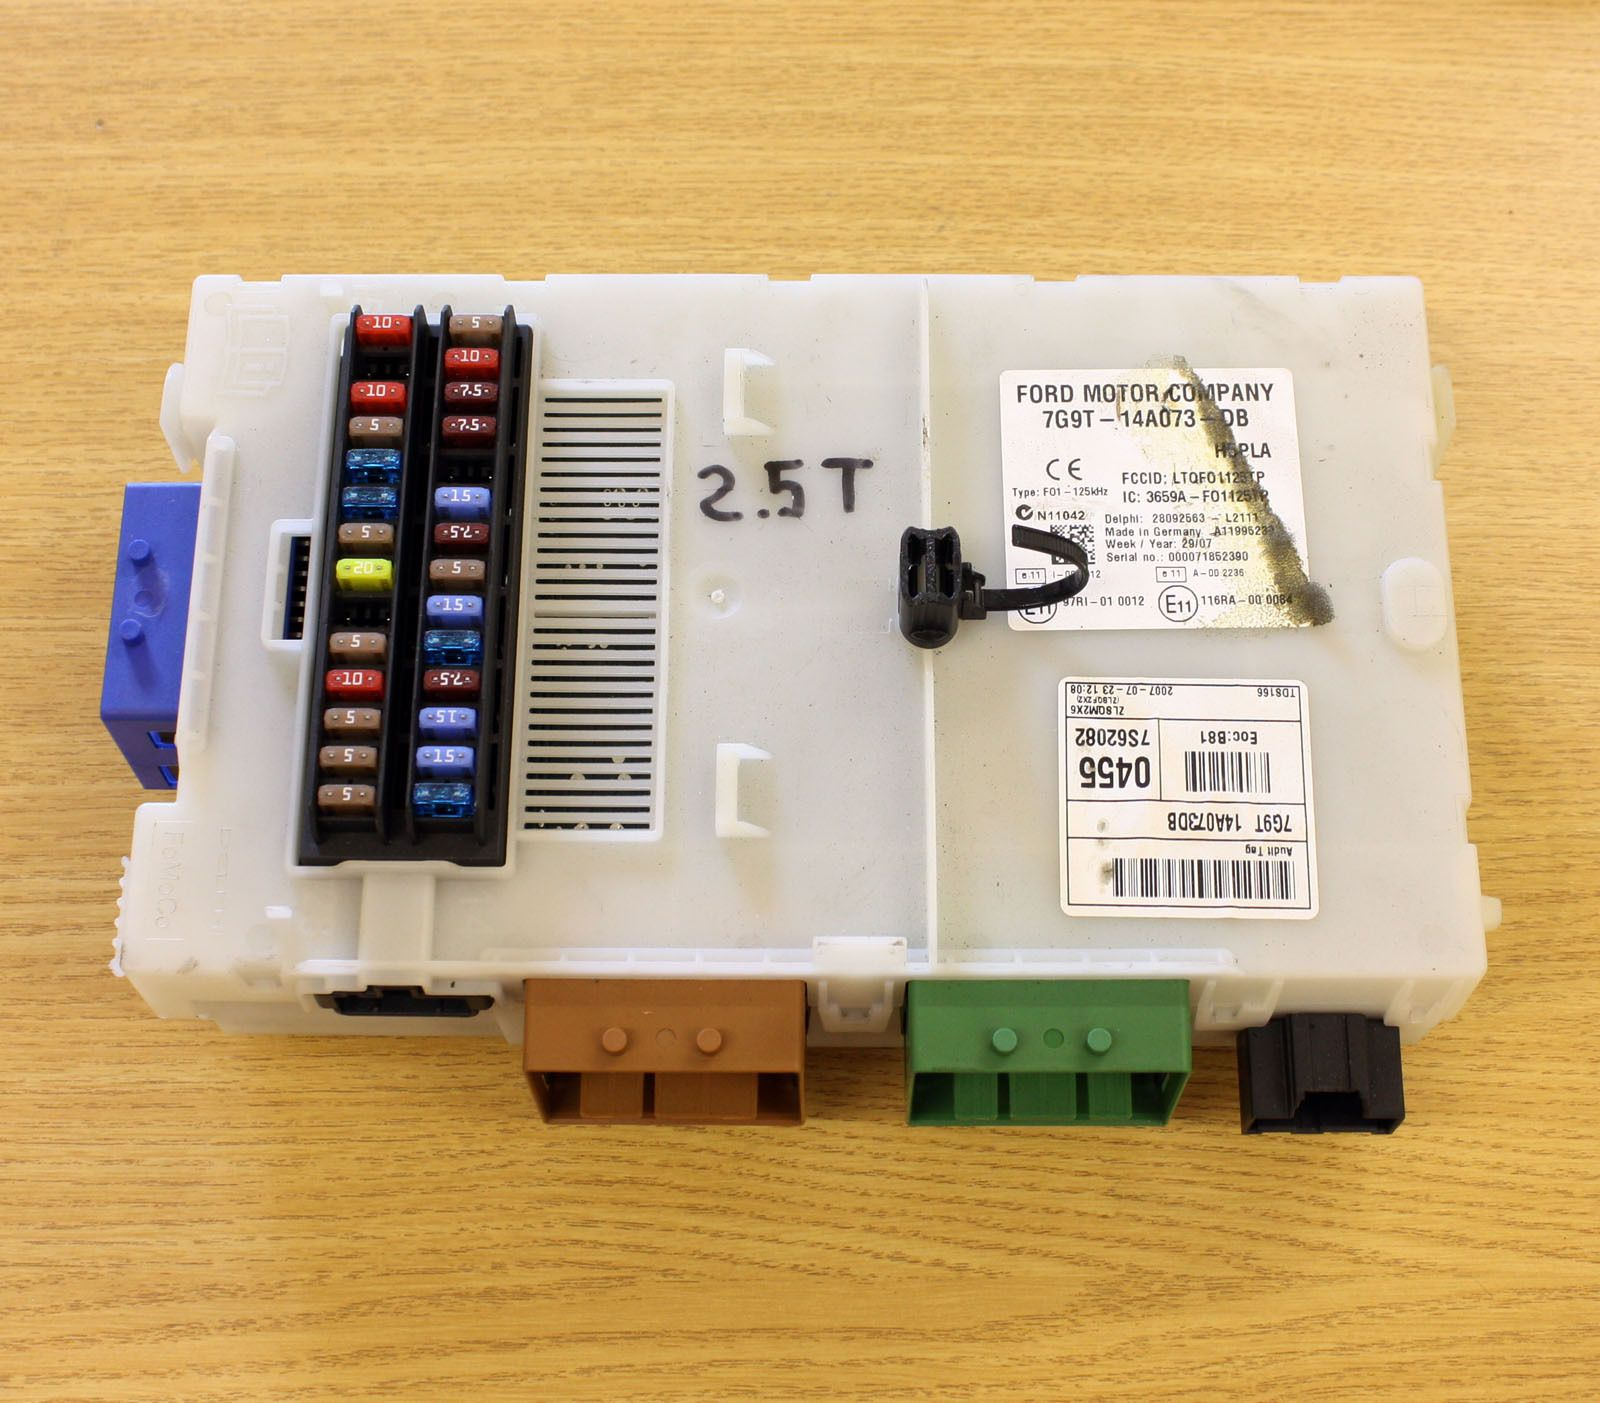 ford mondeo mk4 2.5 petrol body control module fuse box 7g9t 14a073 cf 1681101 1199 p ford mondeo mk4 2 5 petrol body control module fuse box 7g9t ford mondeo mk4 fuse box layout at panicattacktreatment.co